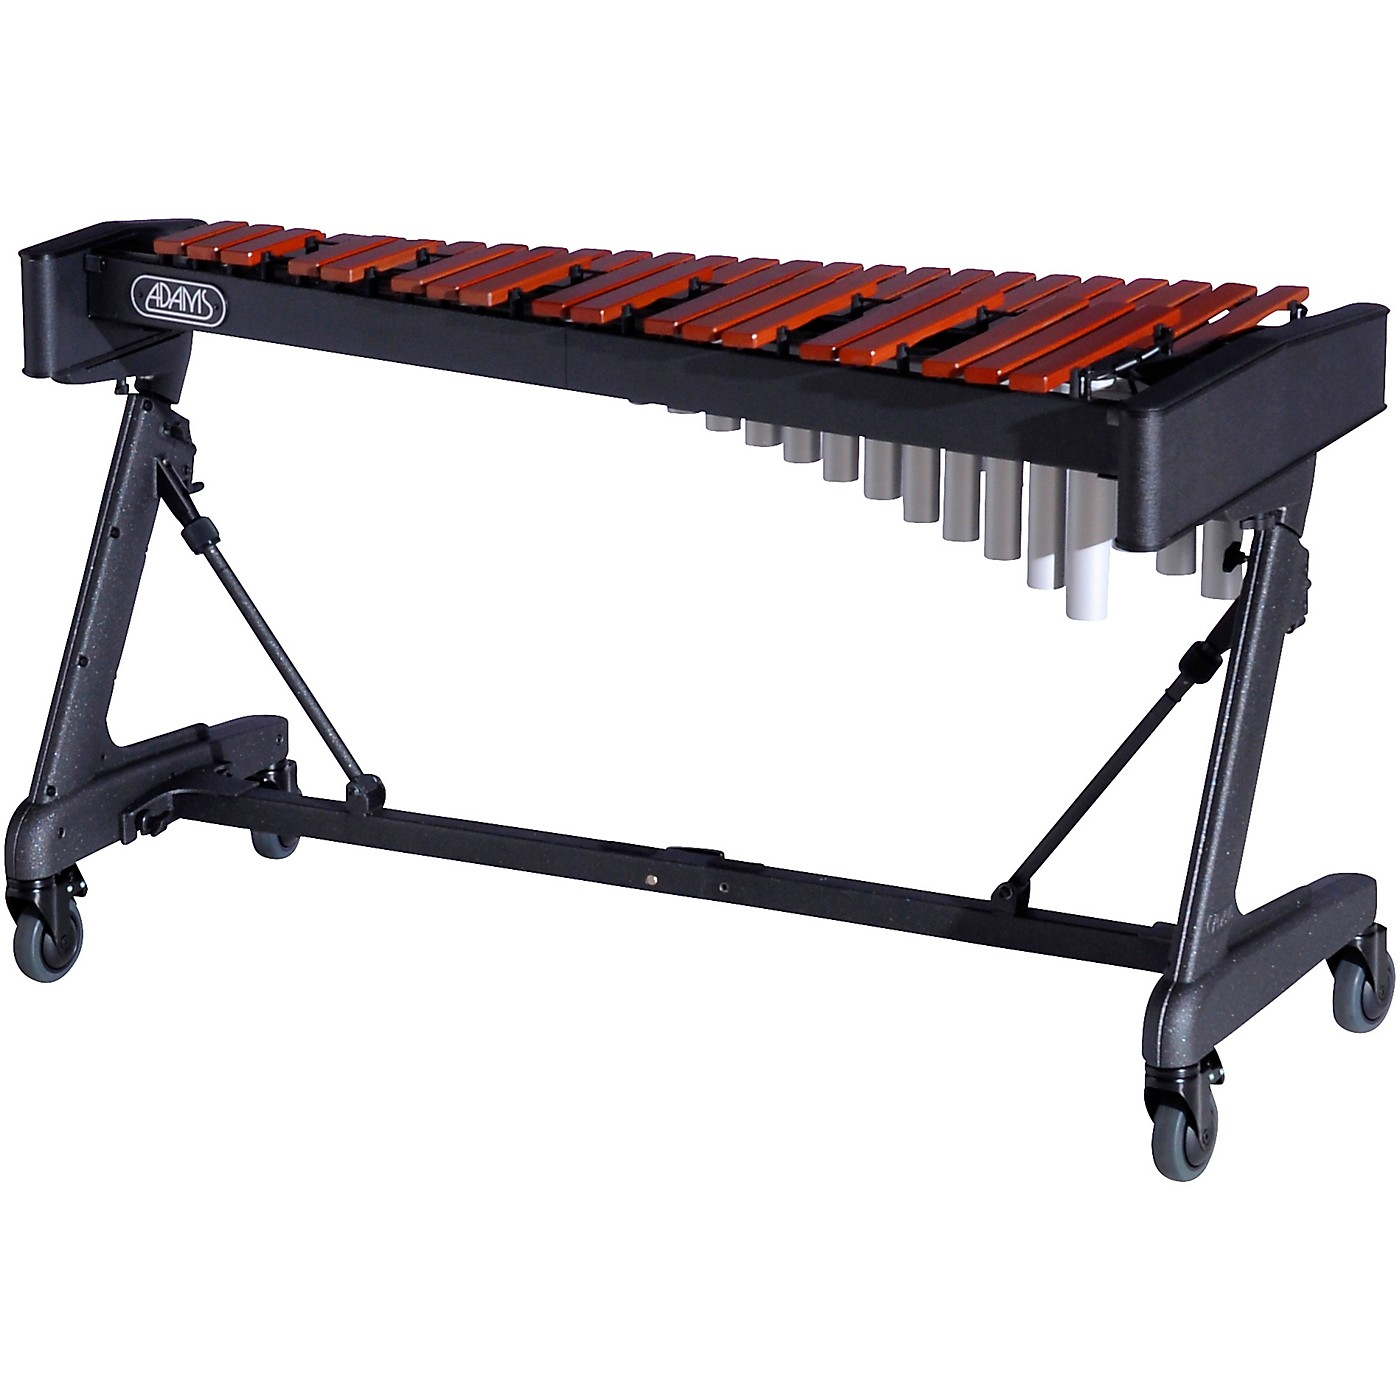 Adams 3.5 Octave Soloist Series Synthetic Bar Xylophone with Apex Frame thumbnail